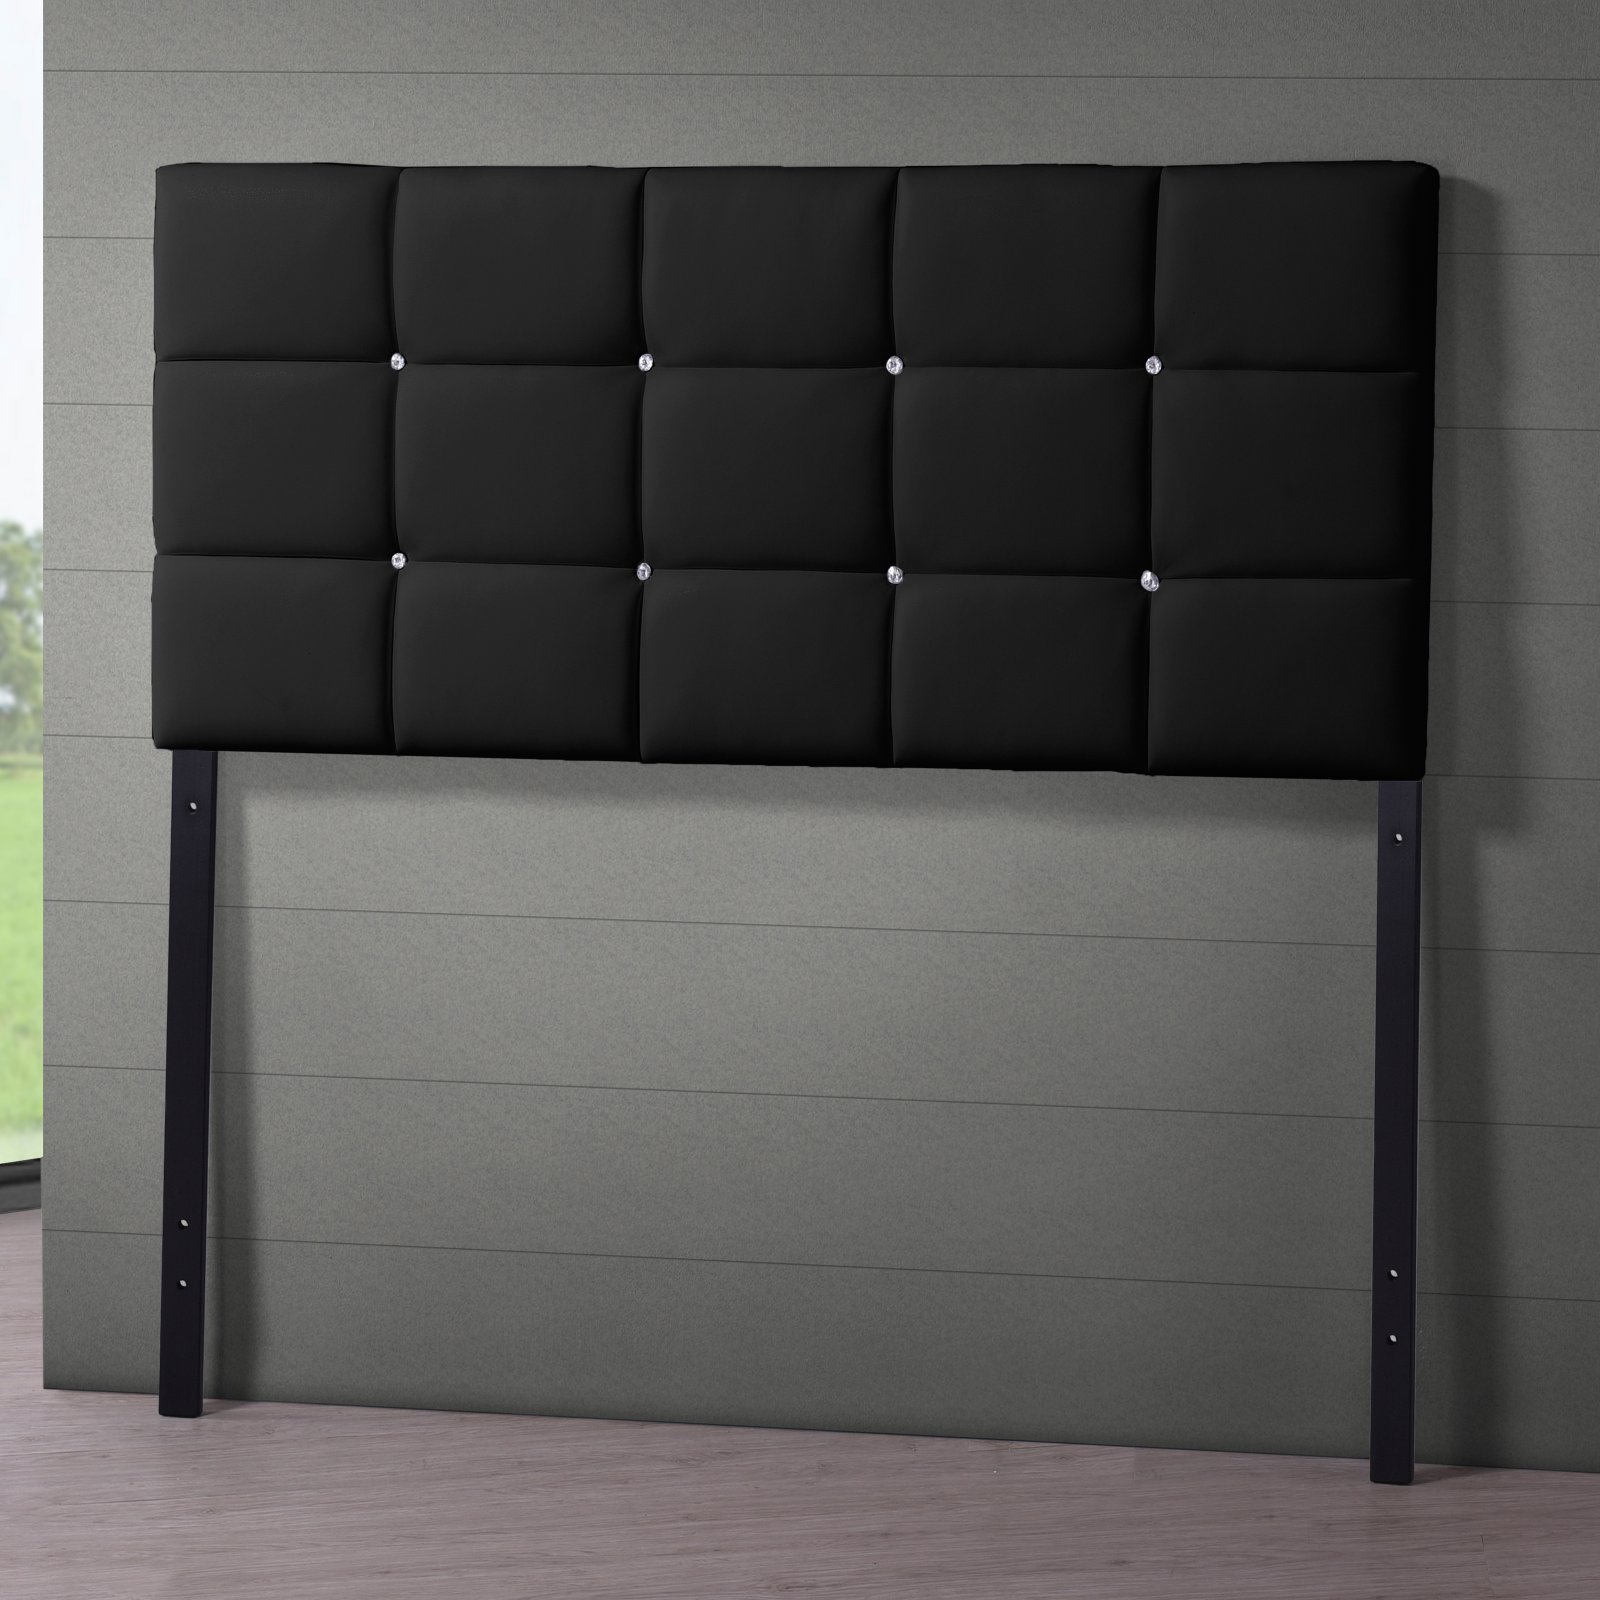 Baxton Studio Bordeaux Modern and Contemporary Faux Leather Full Size Headboard, Multiple Sizes and Colors